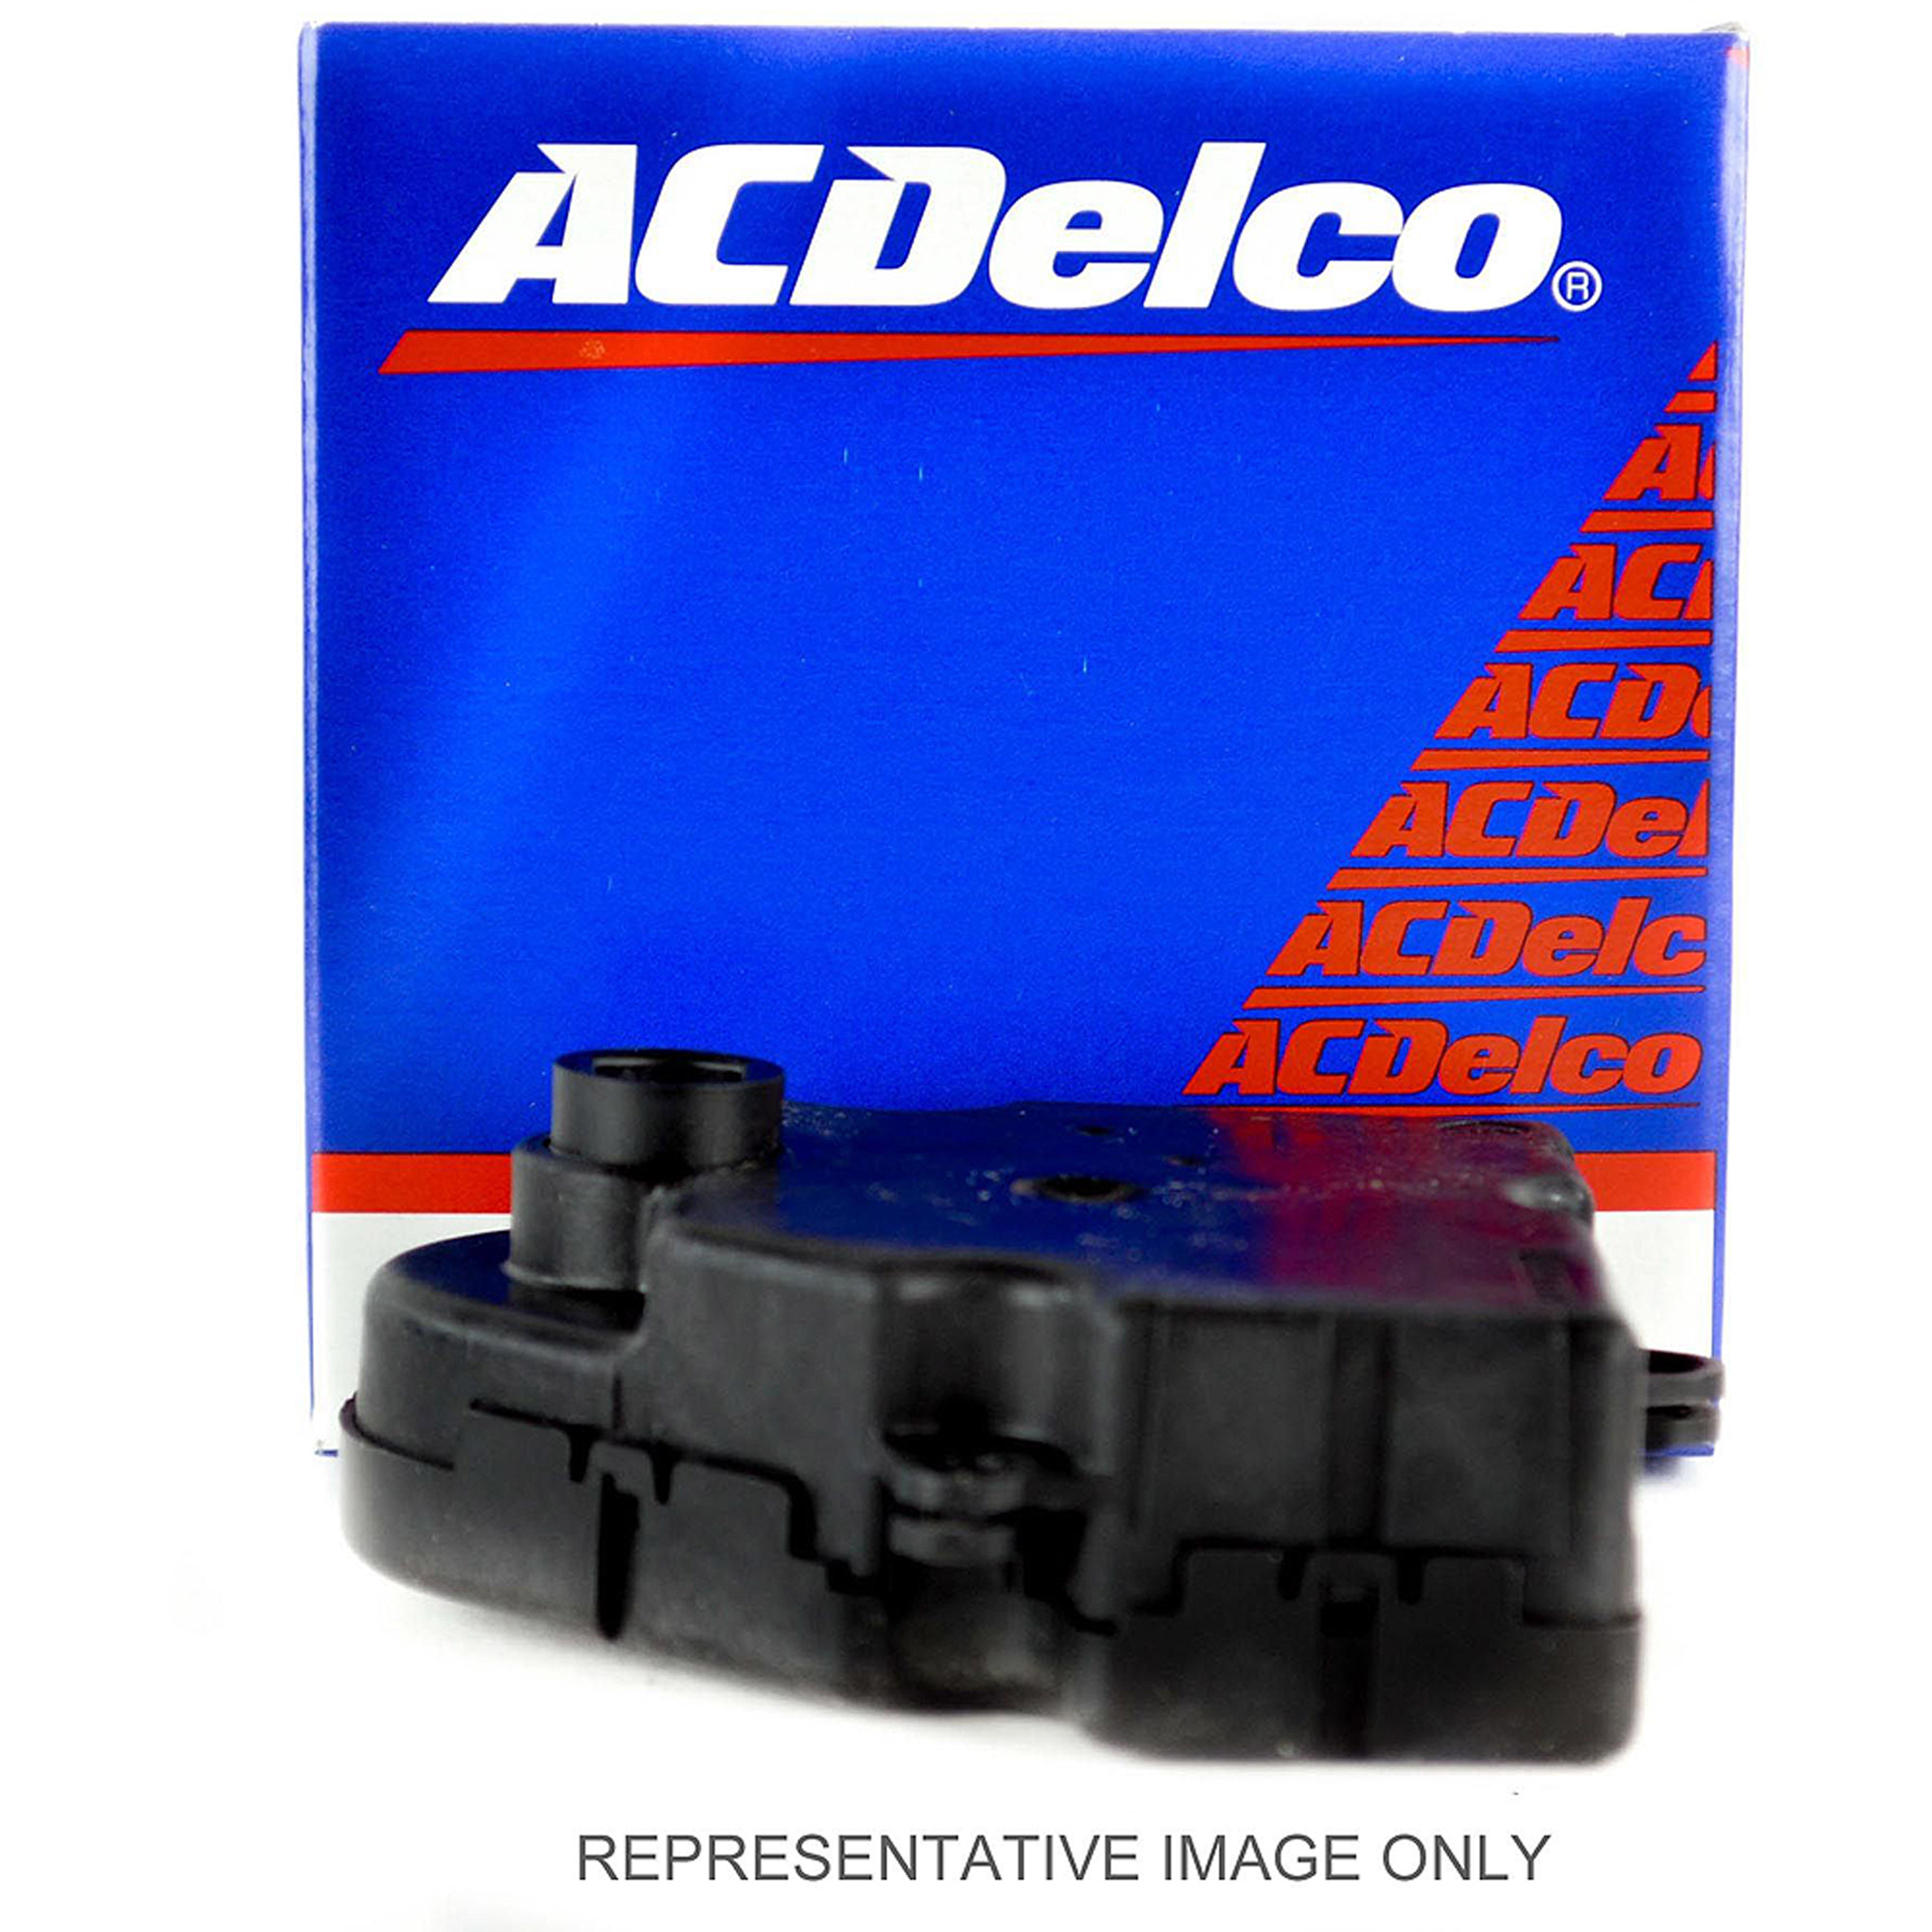 ACDelco Actuator Assembly, DEL15-72631